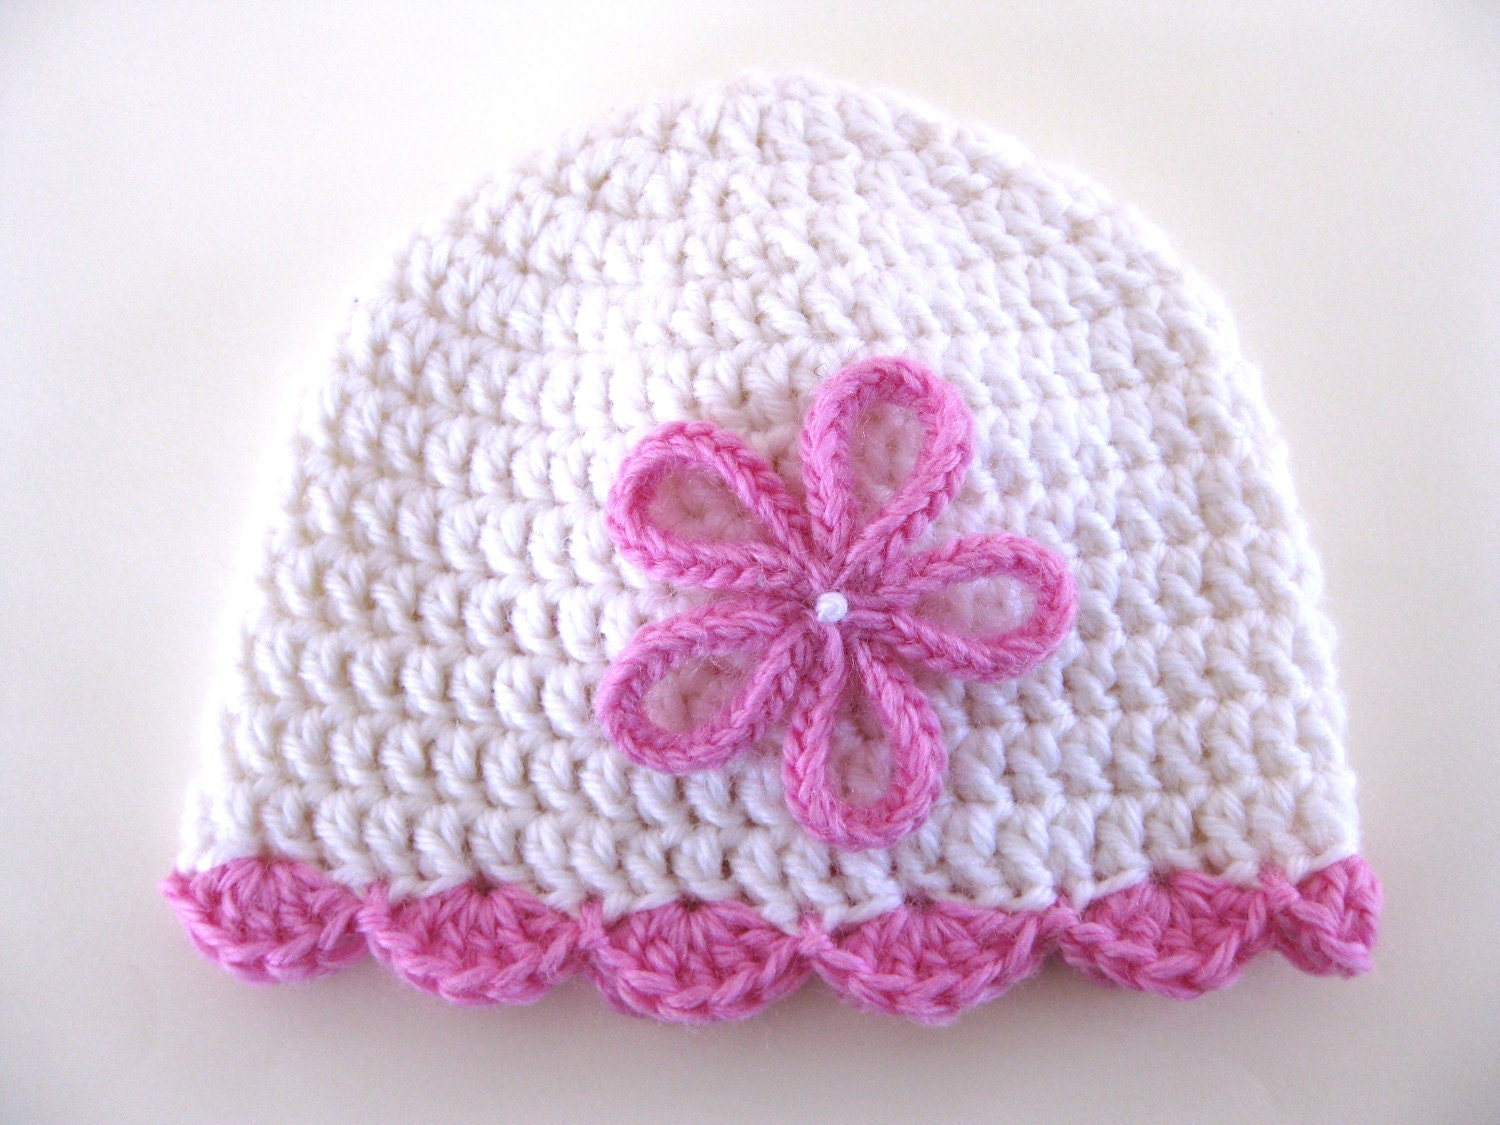 Pattern preemie crochet hat shell edge flower pdf girl baby scallop ...